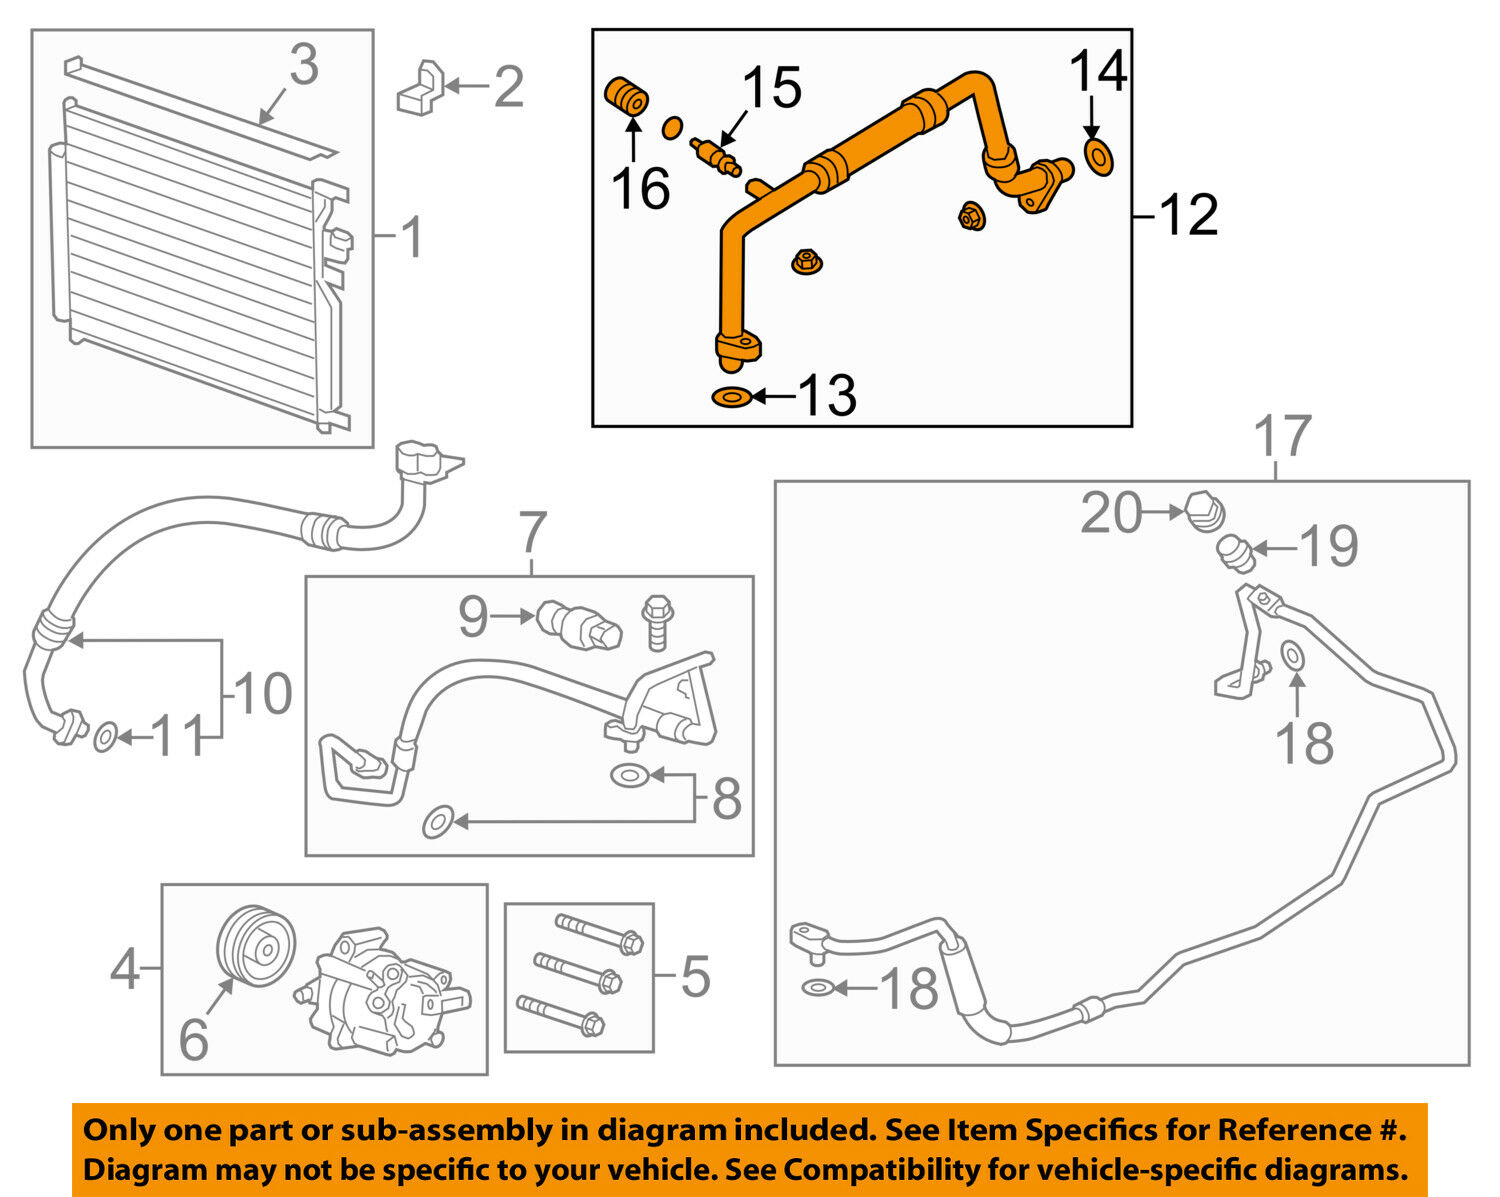 Chevrolet Sonic Repair Manual: Air Conditioning Evaporator Hose Assembly Replacement